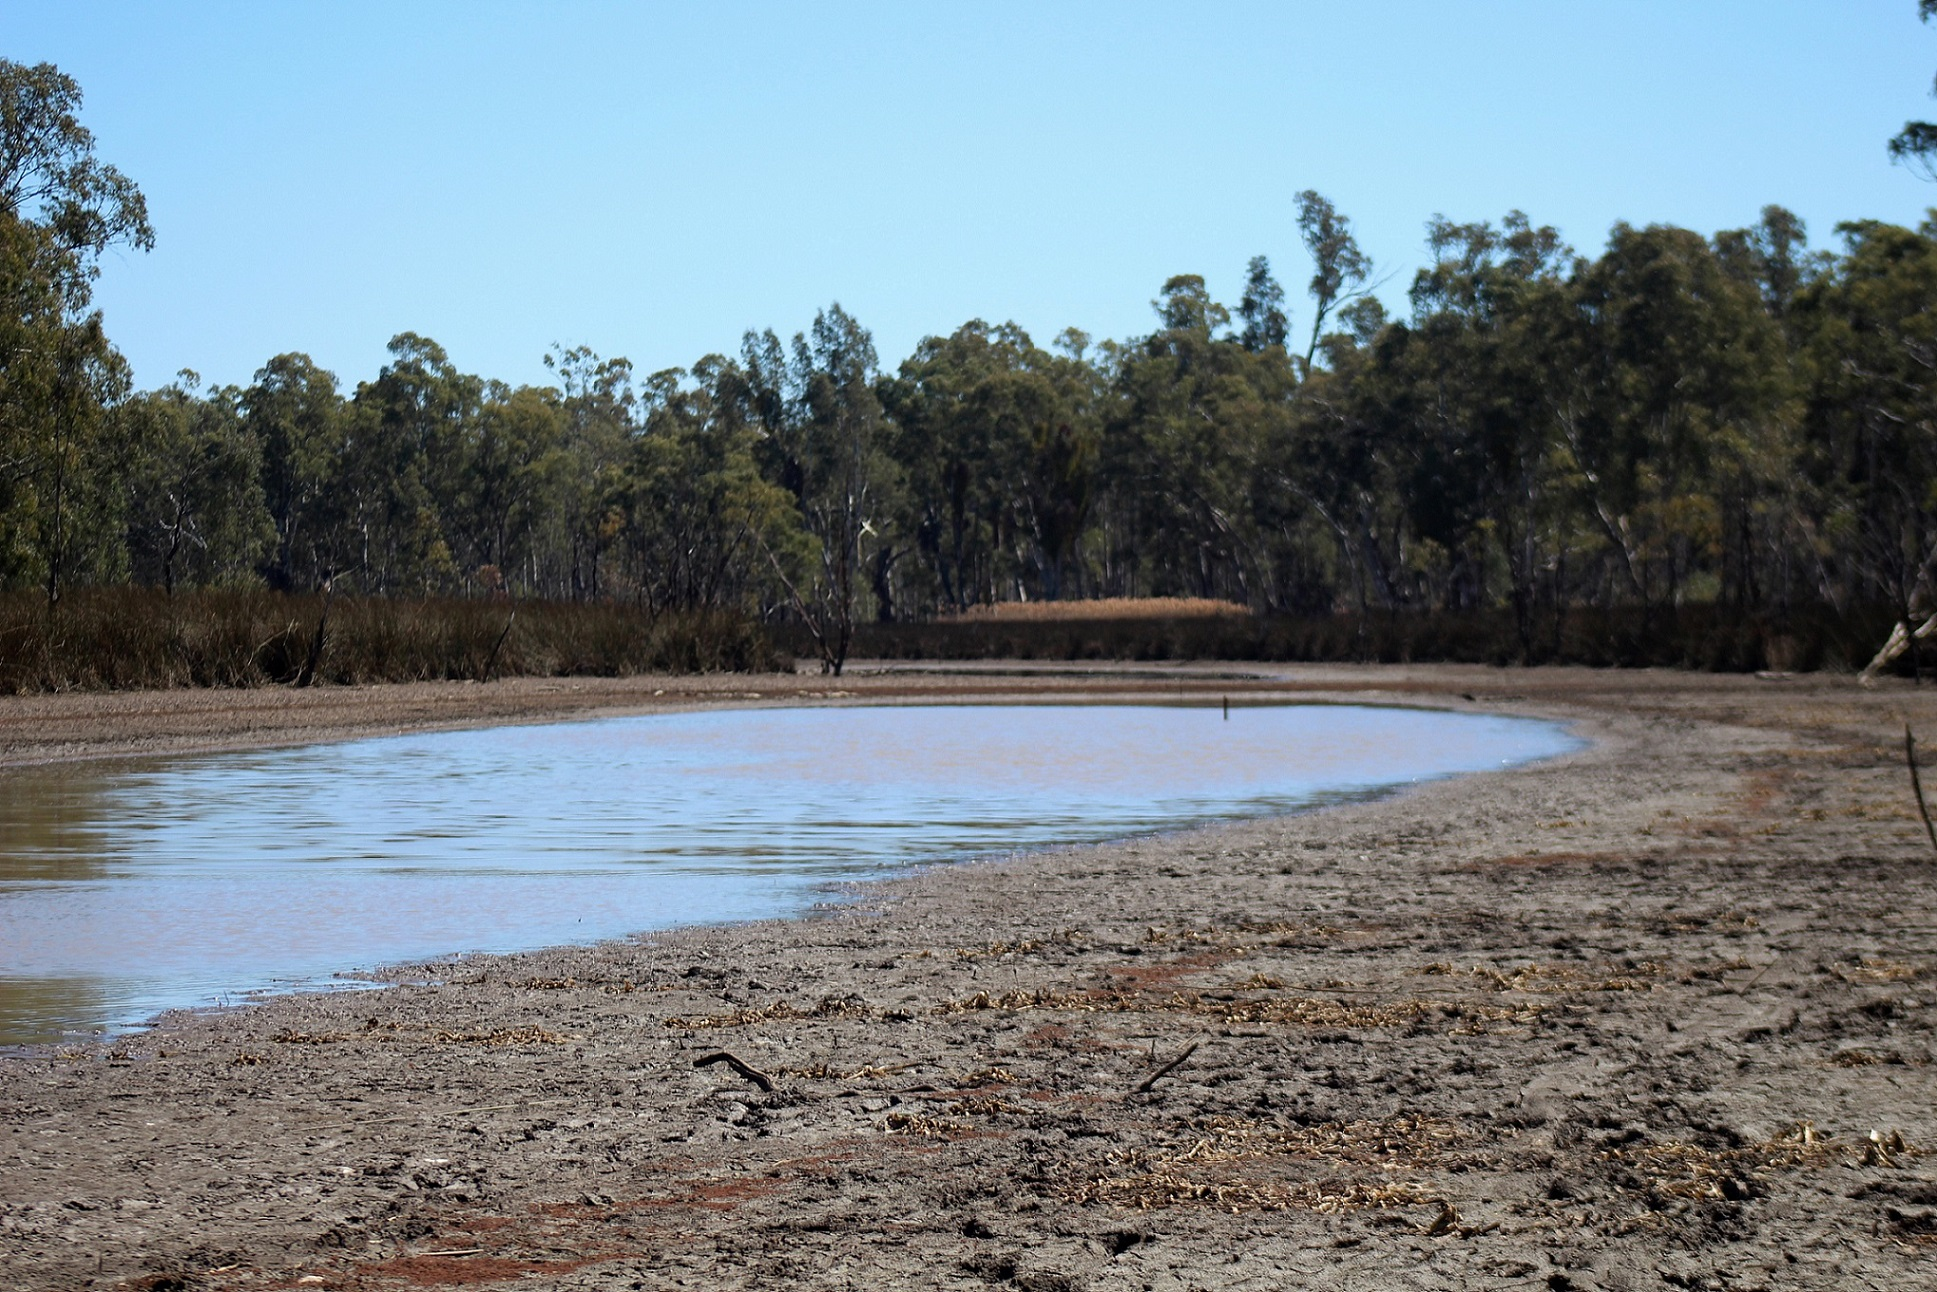 Photo of Gunbower Forest before environmental watering showing as a dry bed with a puddle of water